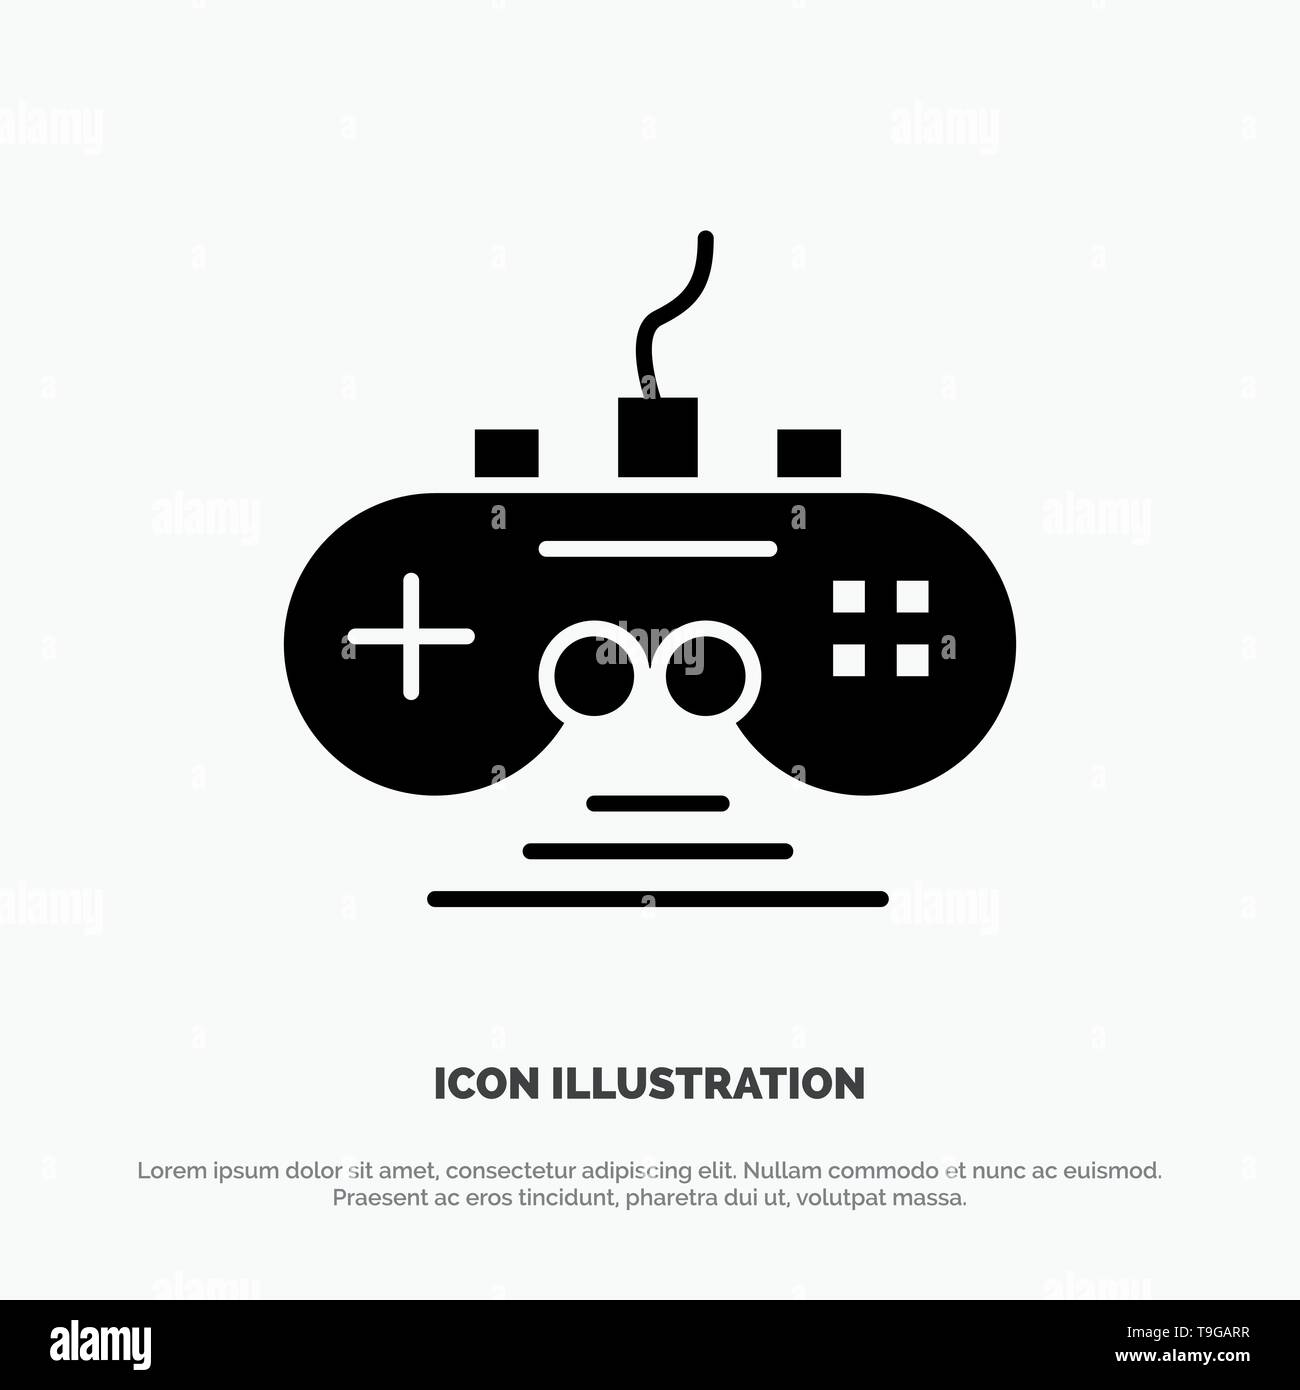 Controller, Game, Game Controller, Gamepad Solid Black Glyph Icon - Stock Image